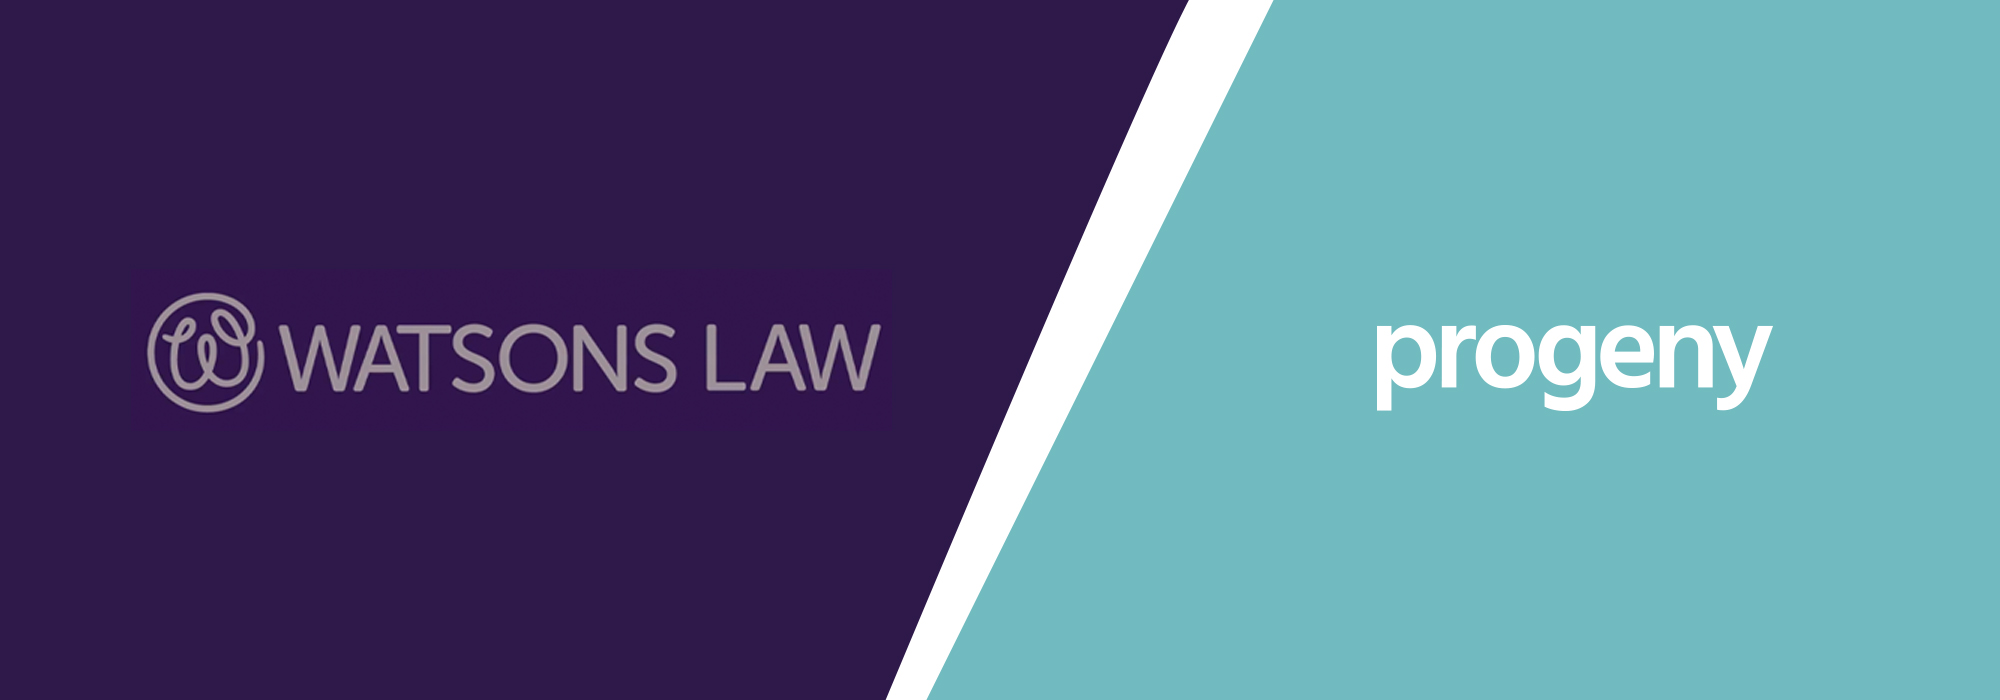 Progeny adds residential conveyancing with acquisition of Watsons Law